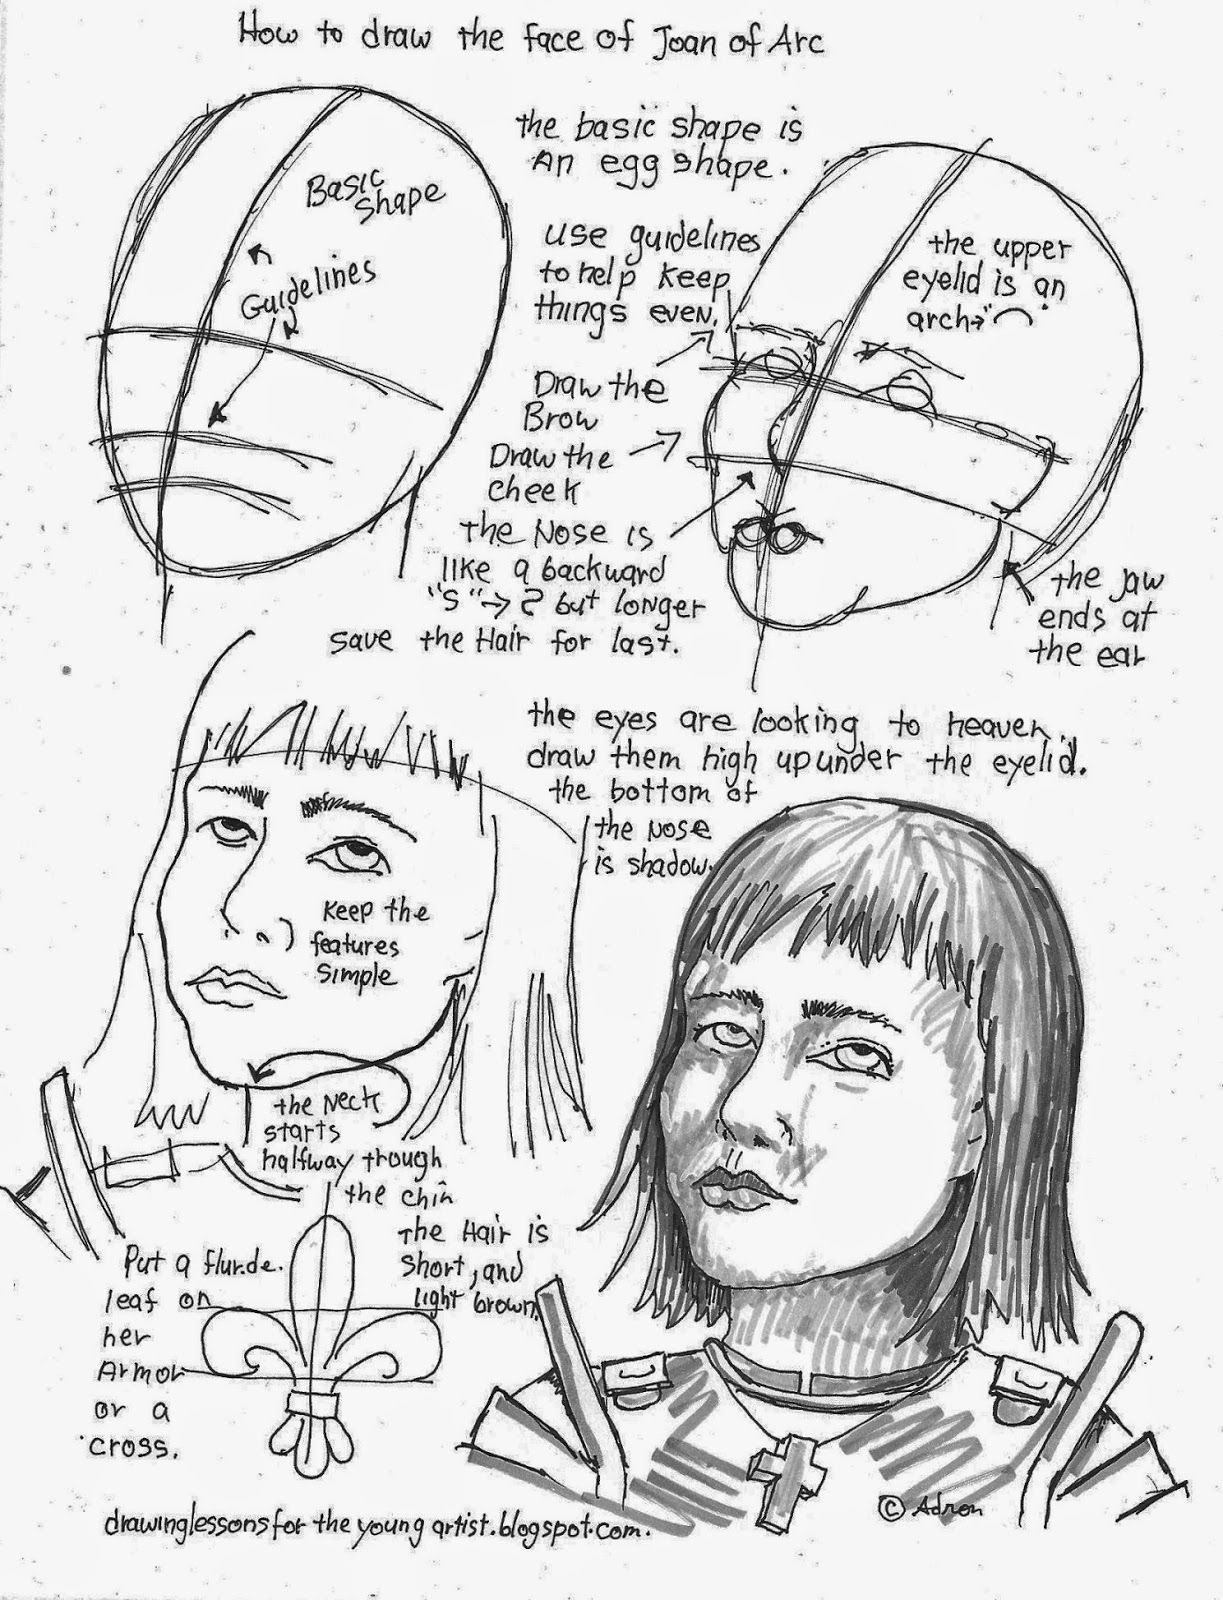 How To Draw The Face Of Joan Of Arc Worksheet See More At